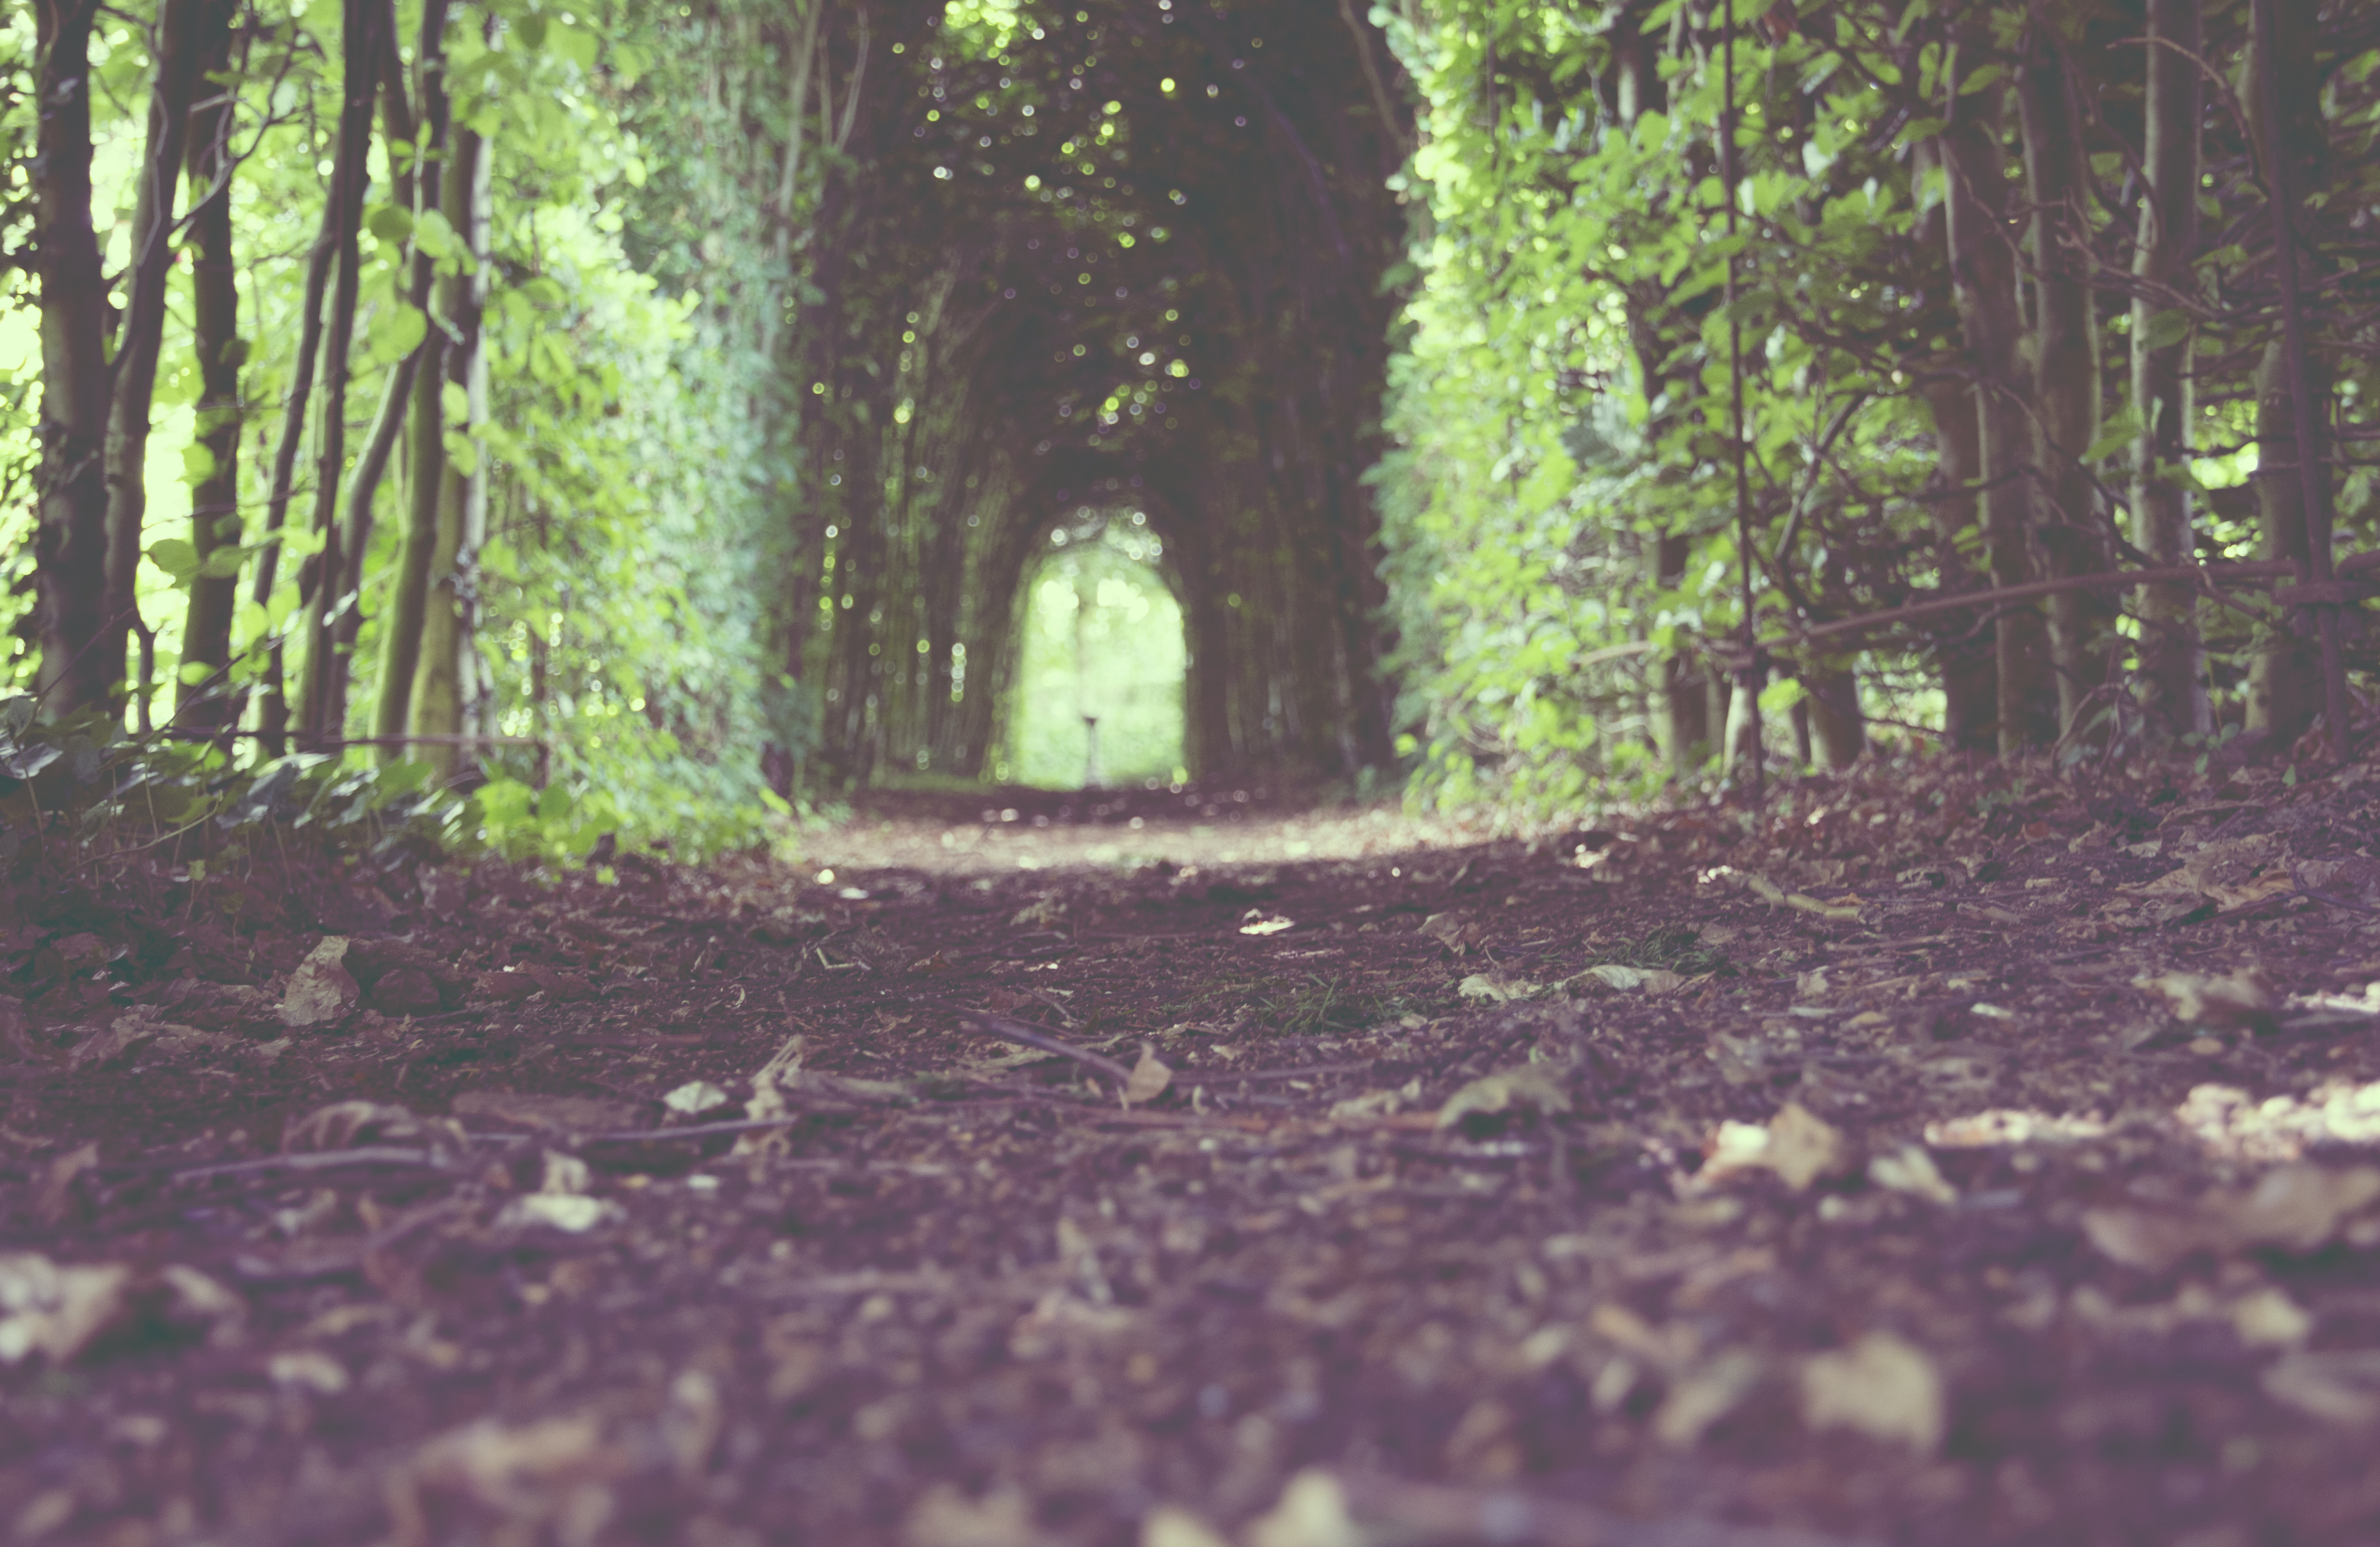 A low shot of a trail leading through a green tree arch